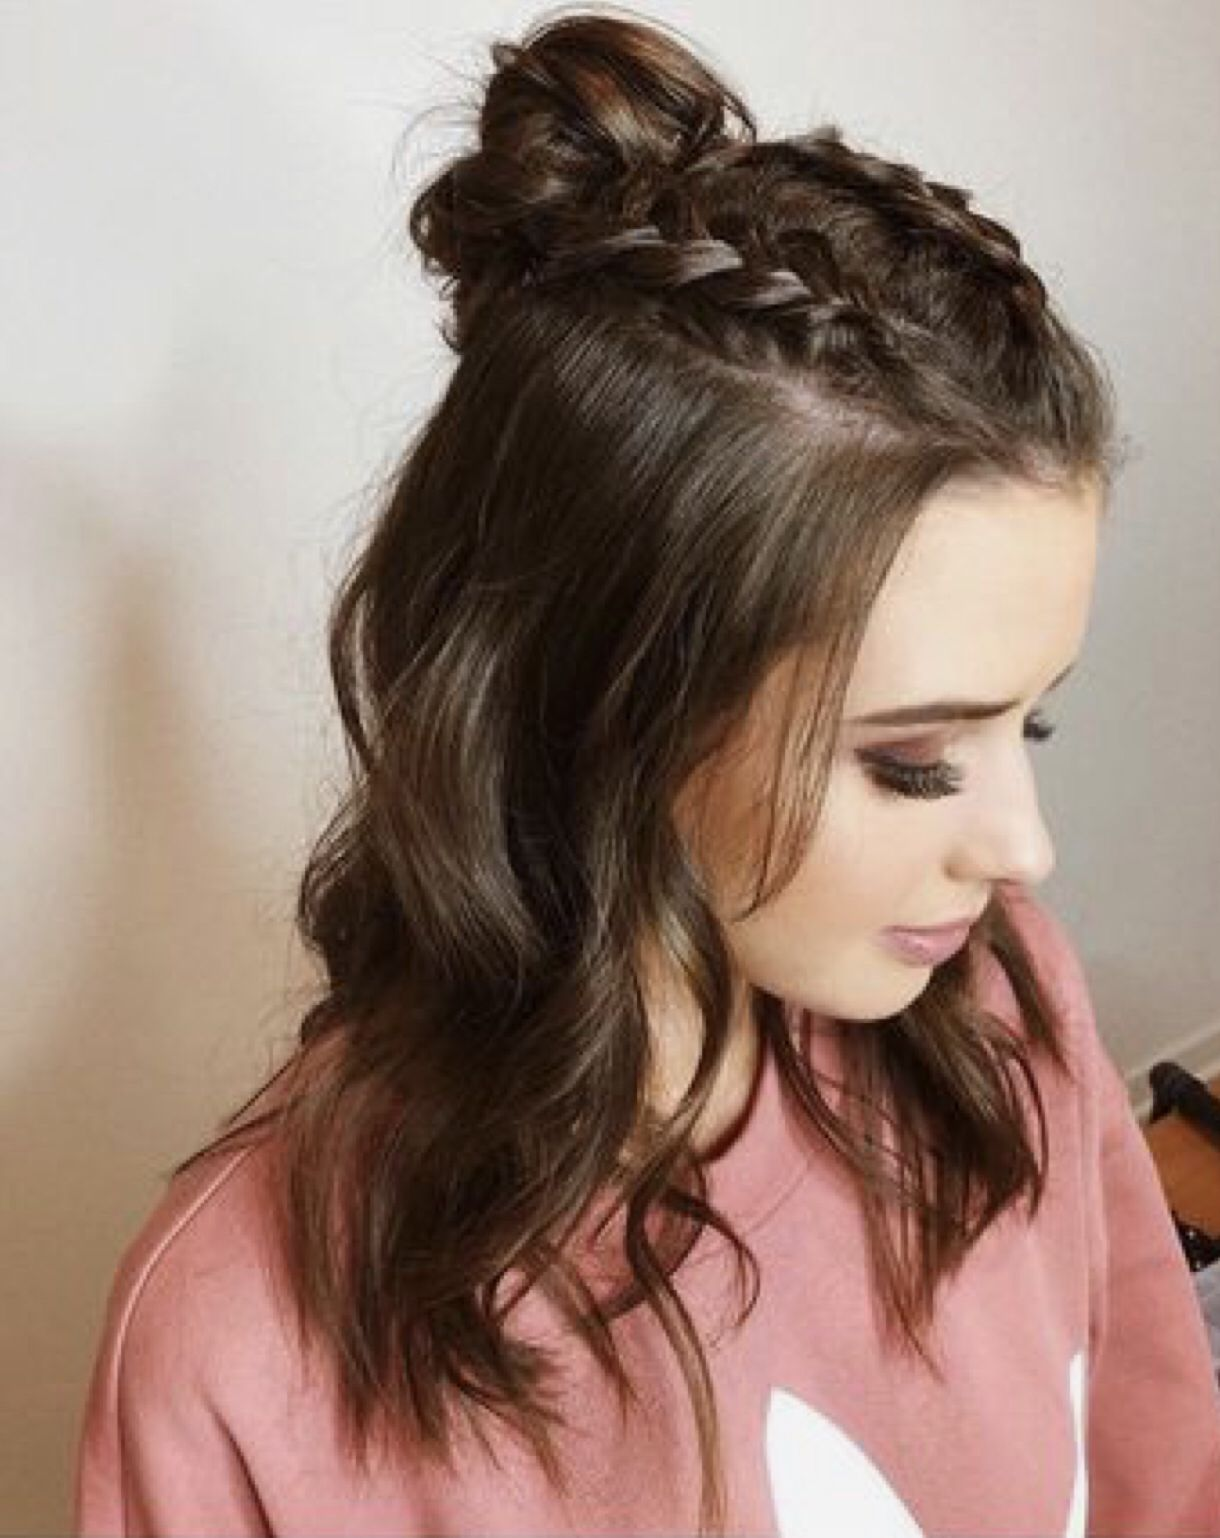 Pin by L.R🌸 on Hair✨  Braided hairstyles easy, Meduim length